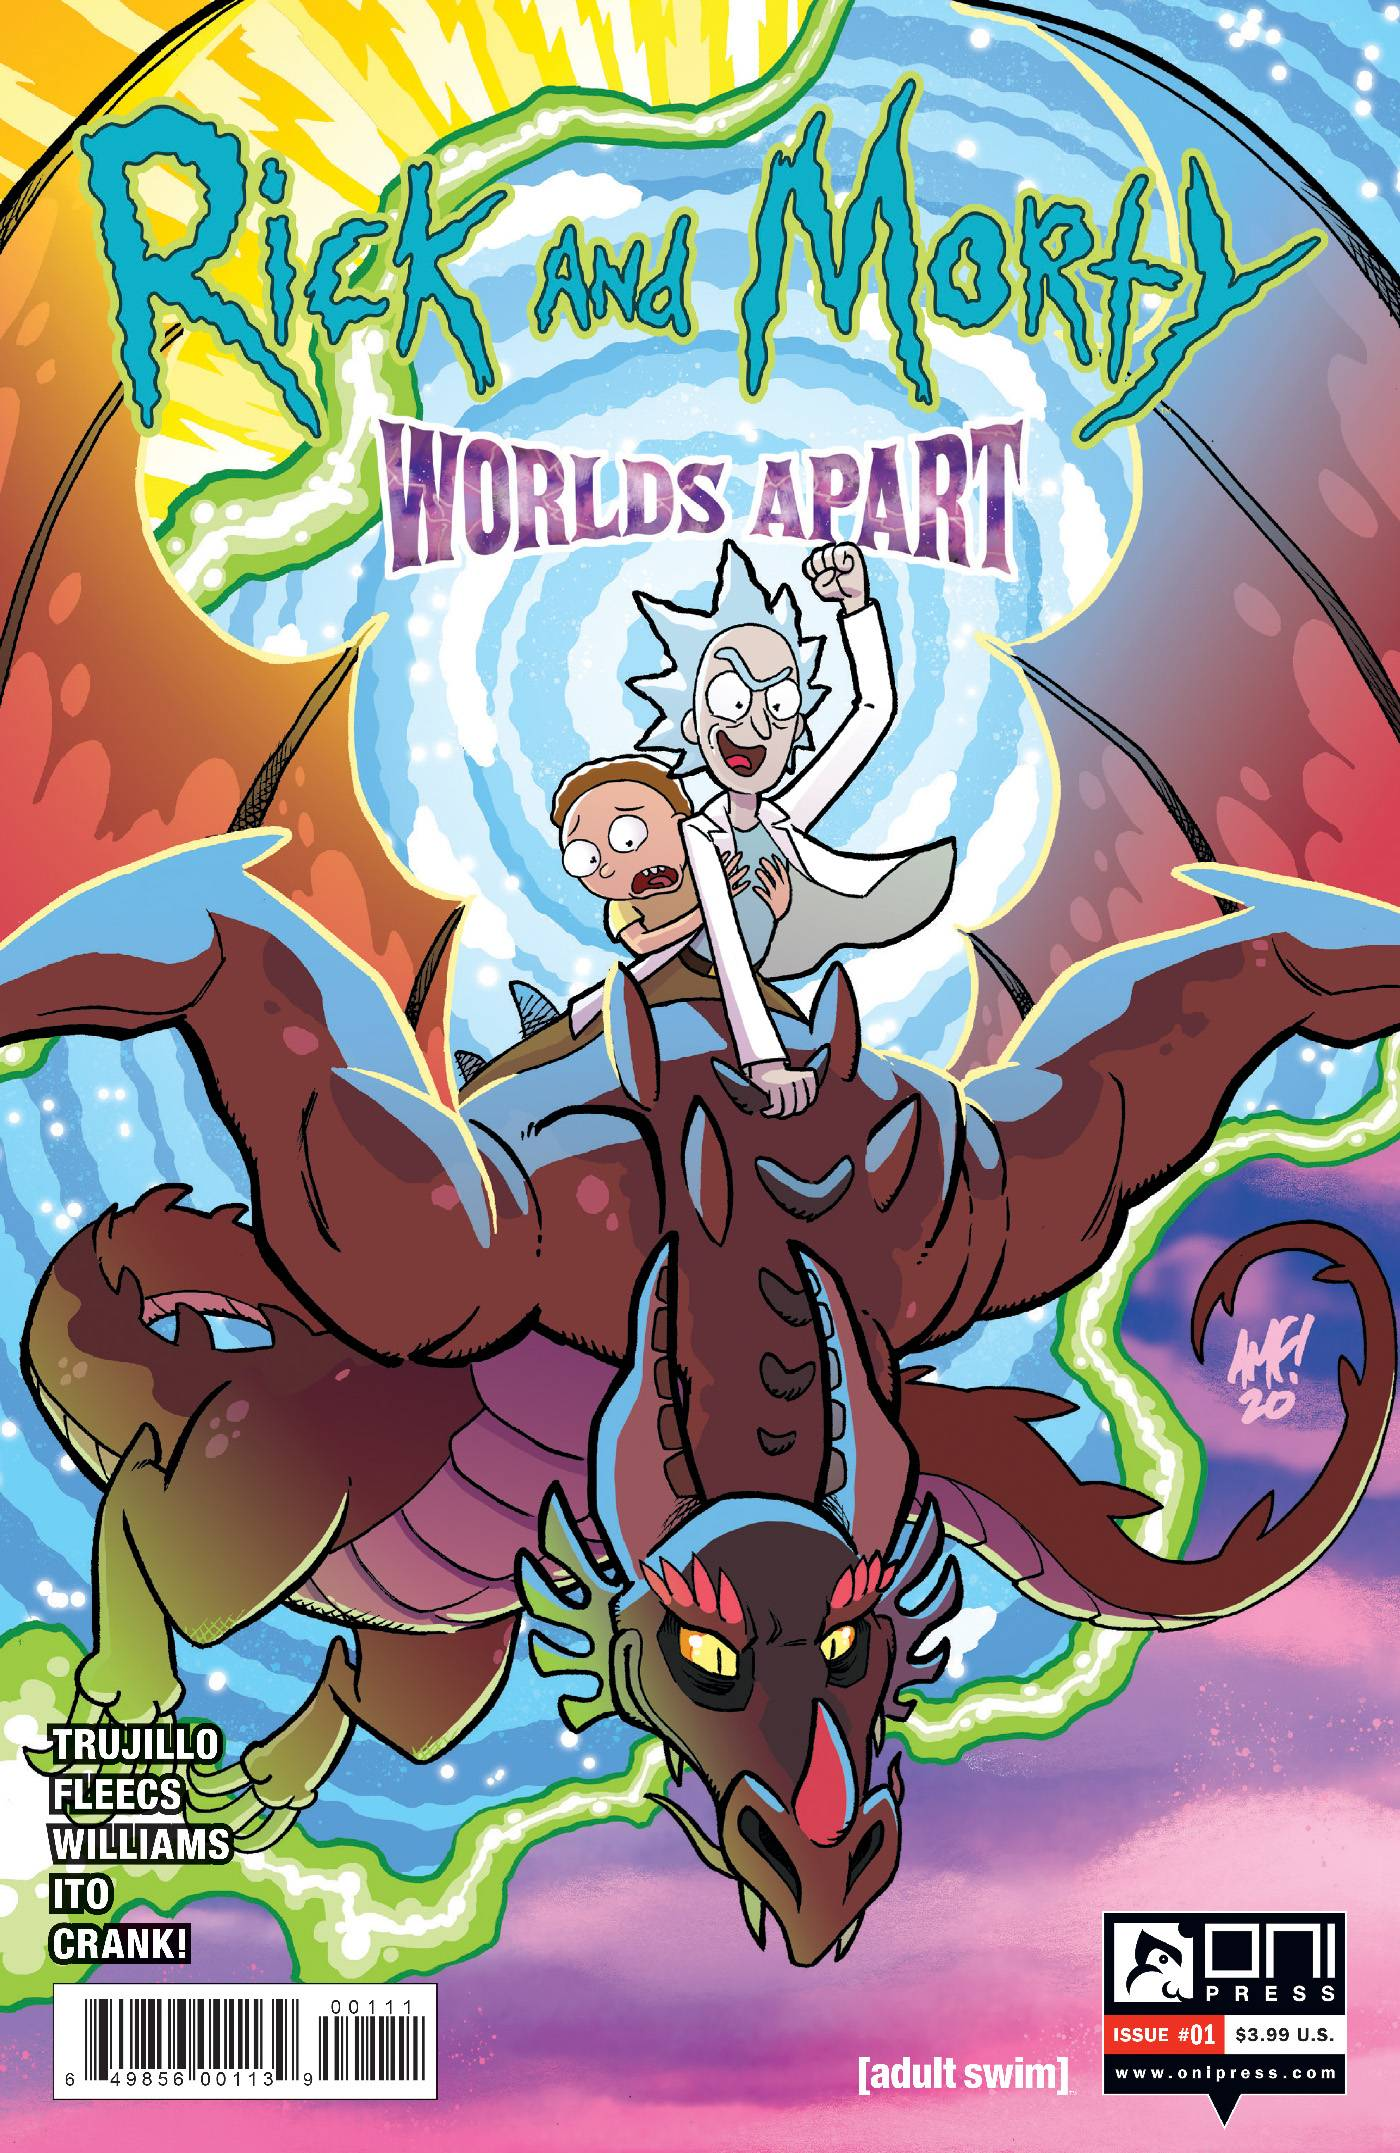 RICK AND MORTY WORLDS APART #1